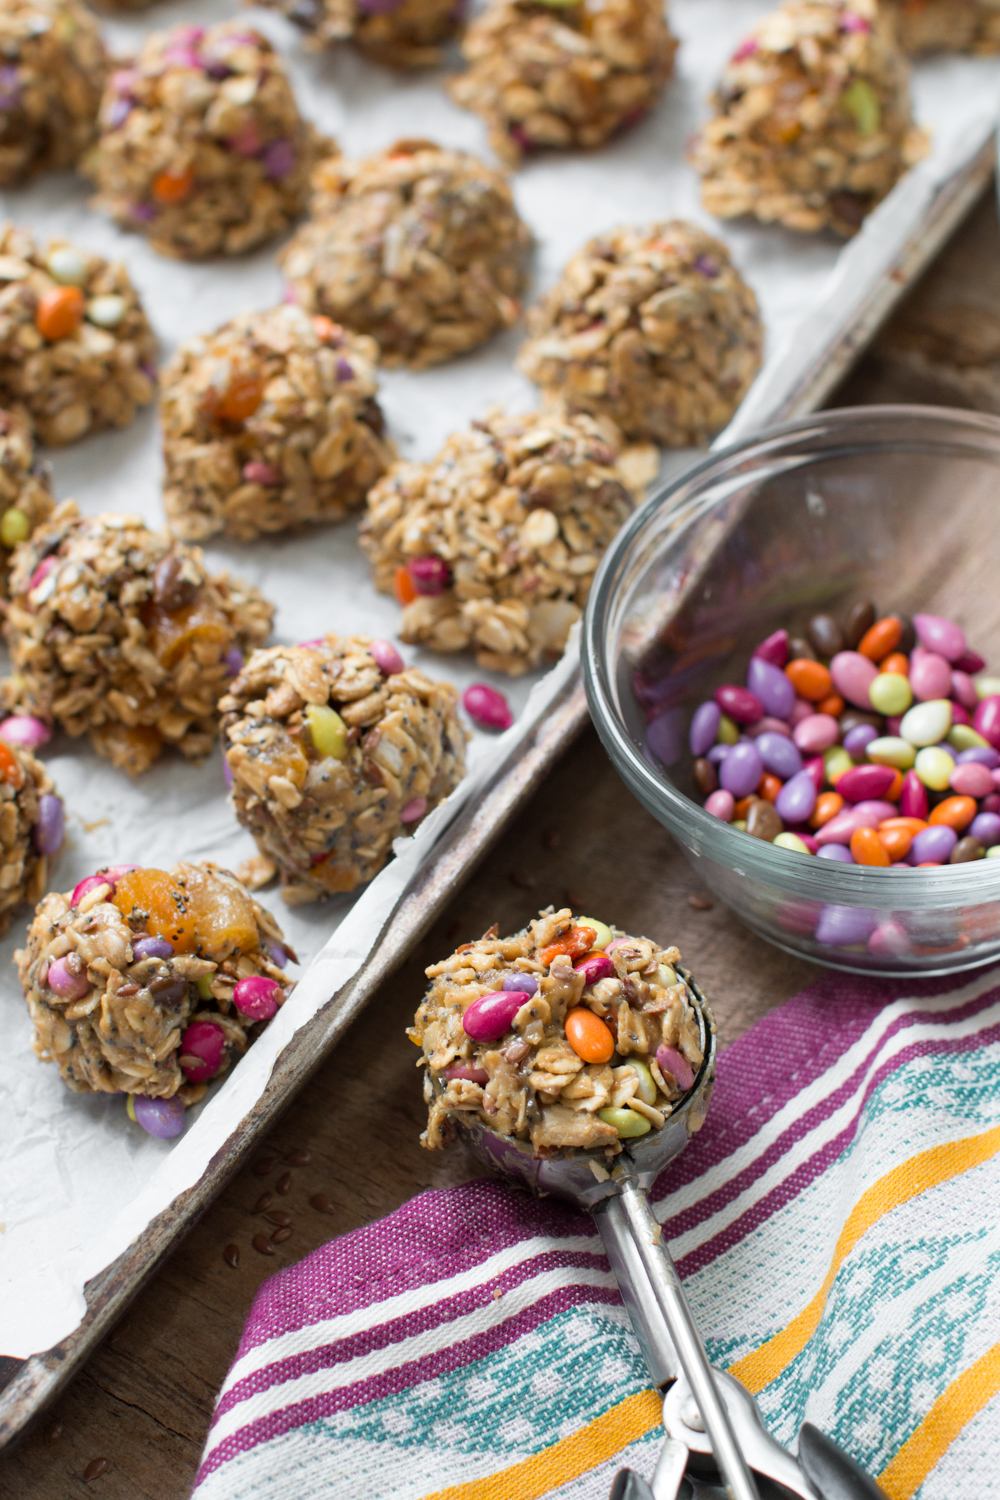 Scooping Sunflower Seed Energy Balls